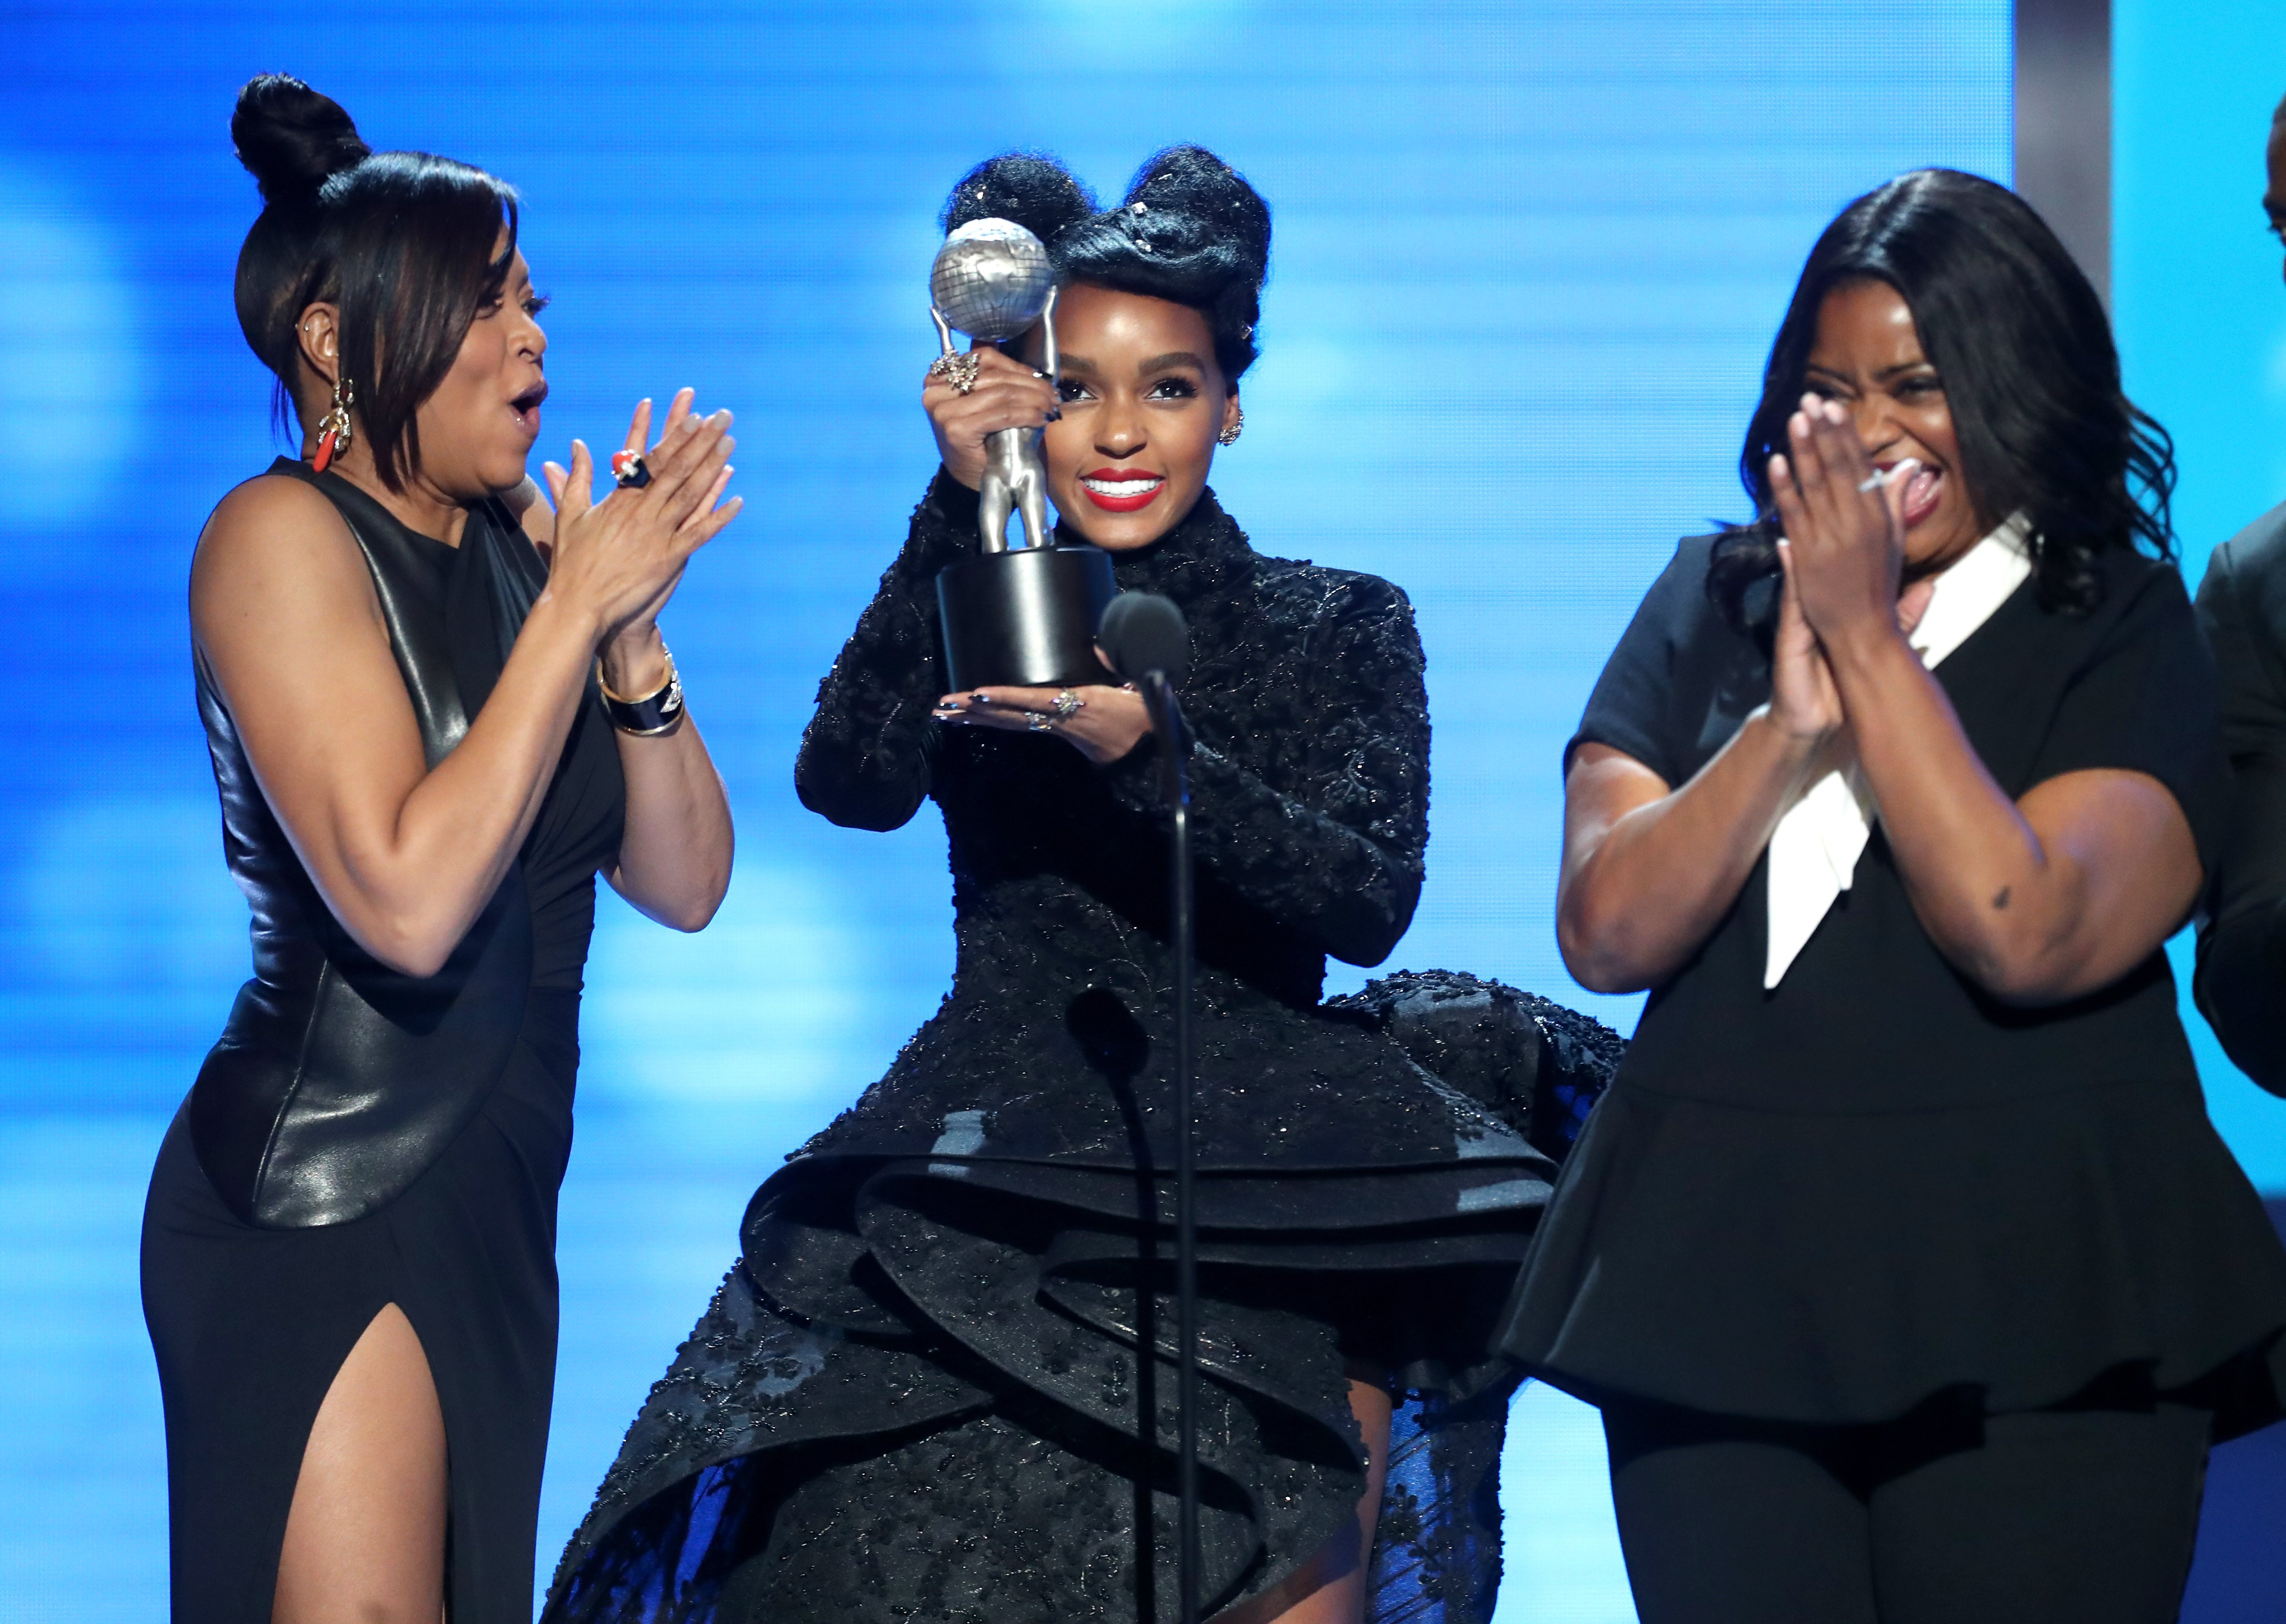 Taraji P. Henson, Janelle Monáe, and Octavia Spencer accept award for Outstanding Motion Picture onstage at the 48th NAACP Image Awards at Pasadena Civic Auditorium on February 11, 2017 in Pasadena, California